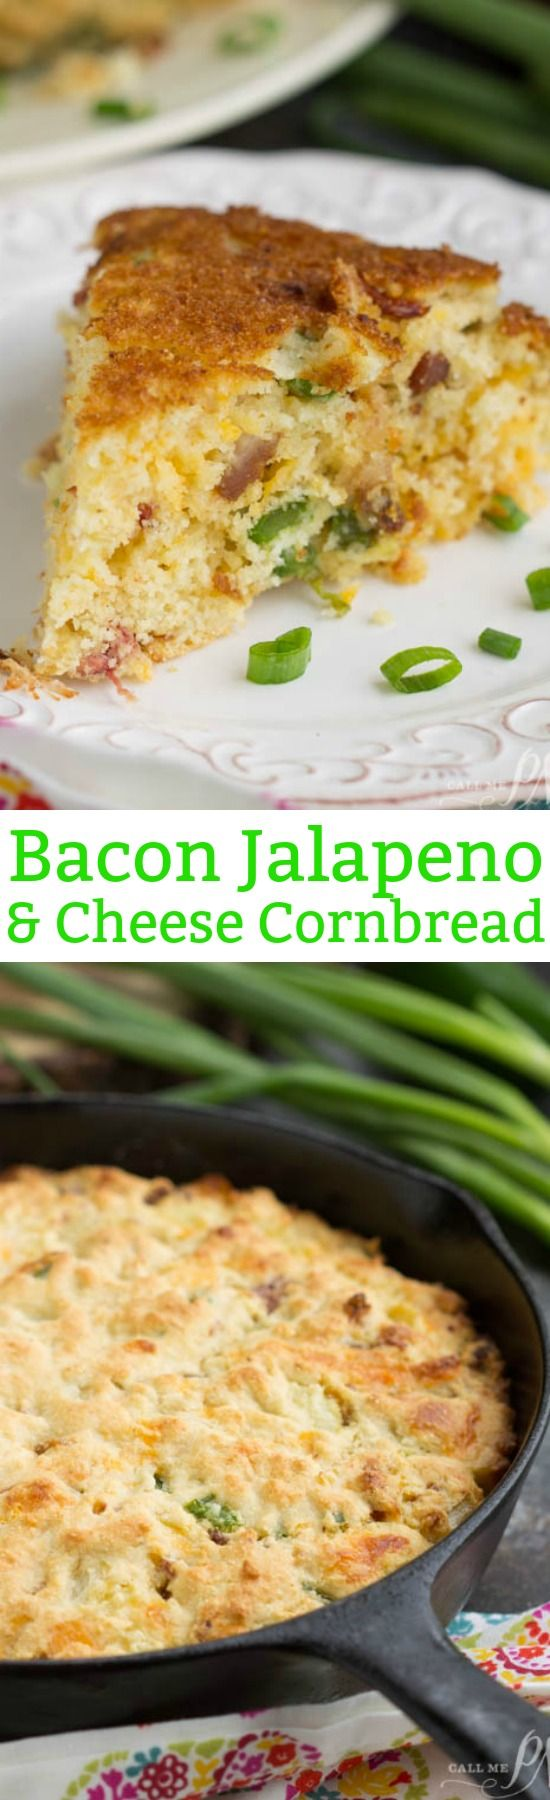 Recipe. Bread. Slightly sweet and savory, Southern Cheesy Jalapeno Bacon Skillet Cornbread, is full of smokey bacon, spicy jalapenos, and cheese. Alone or as a side, this cornbread recipe is delectable!